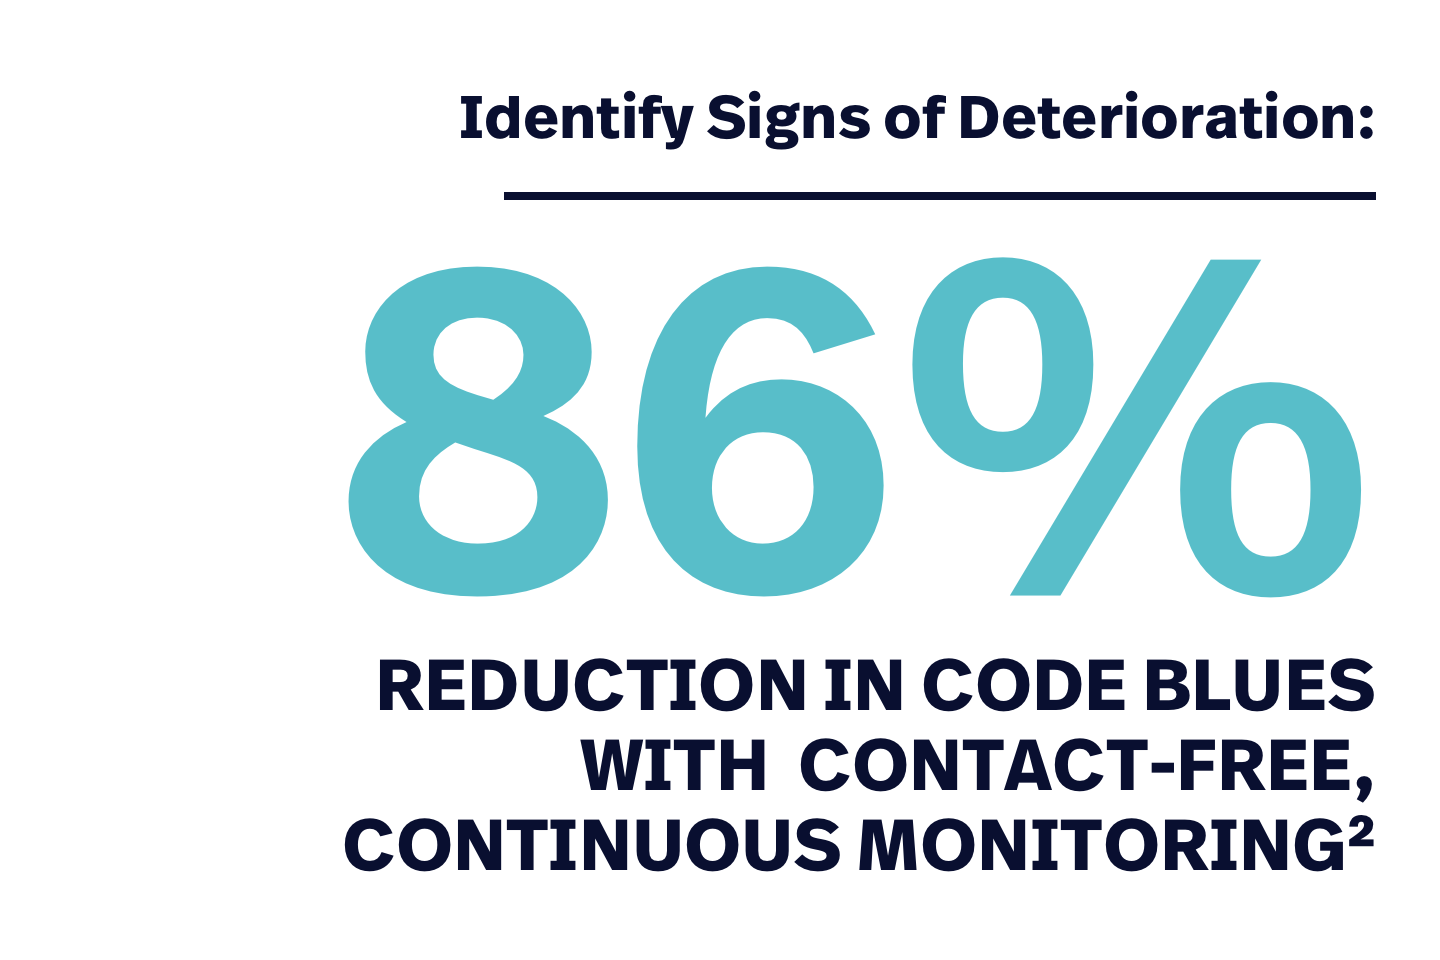 Identify signs of deterioration: 86% reduction in code blues with contact-free, continuous monitoring